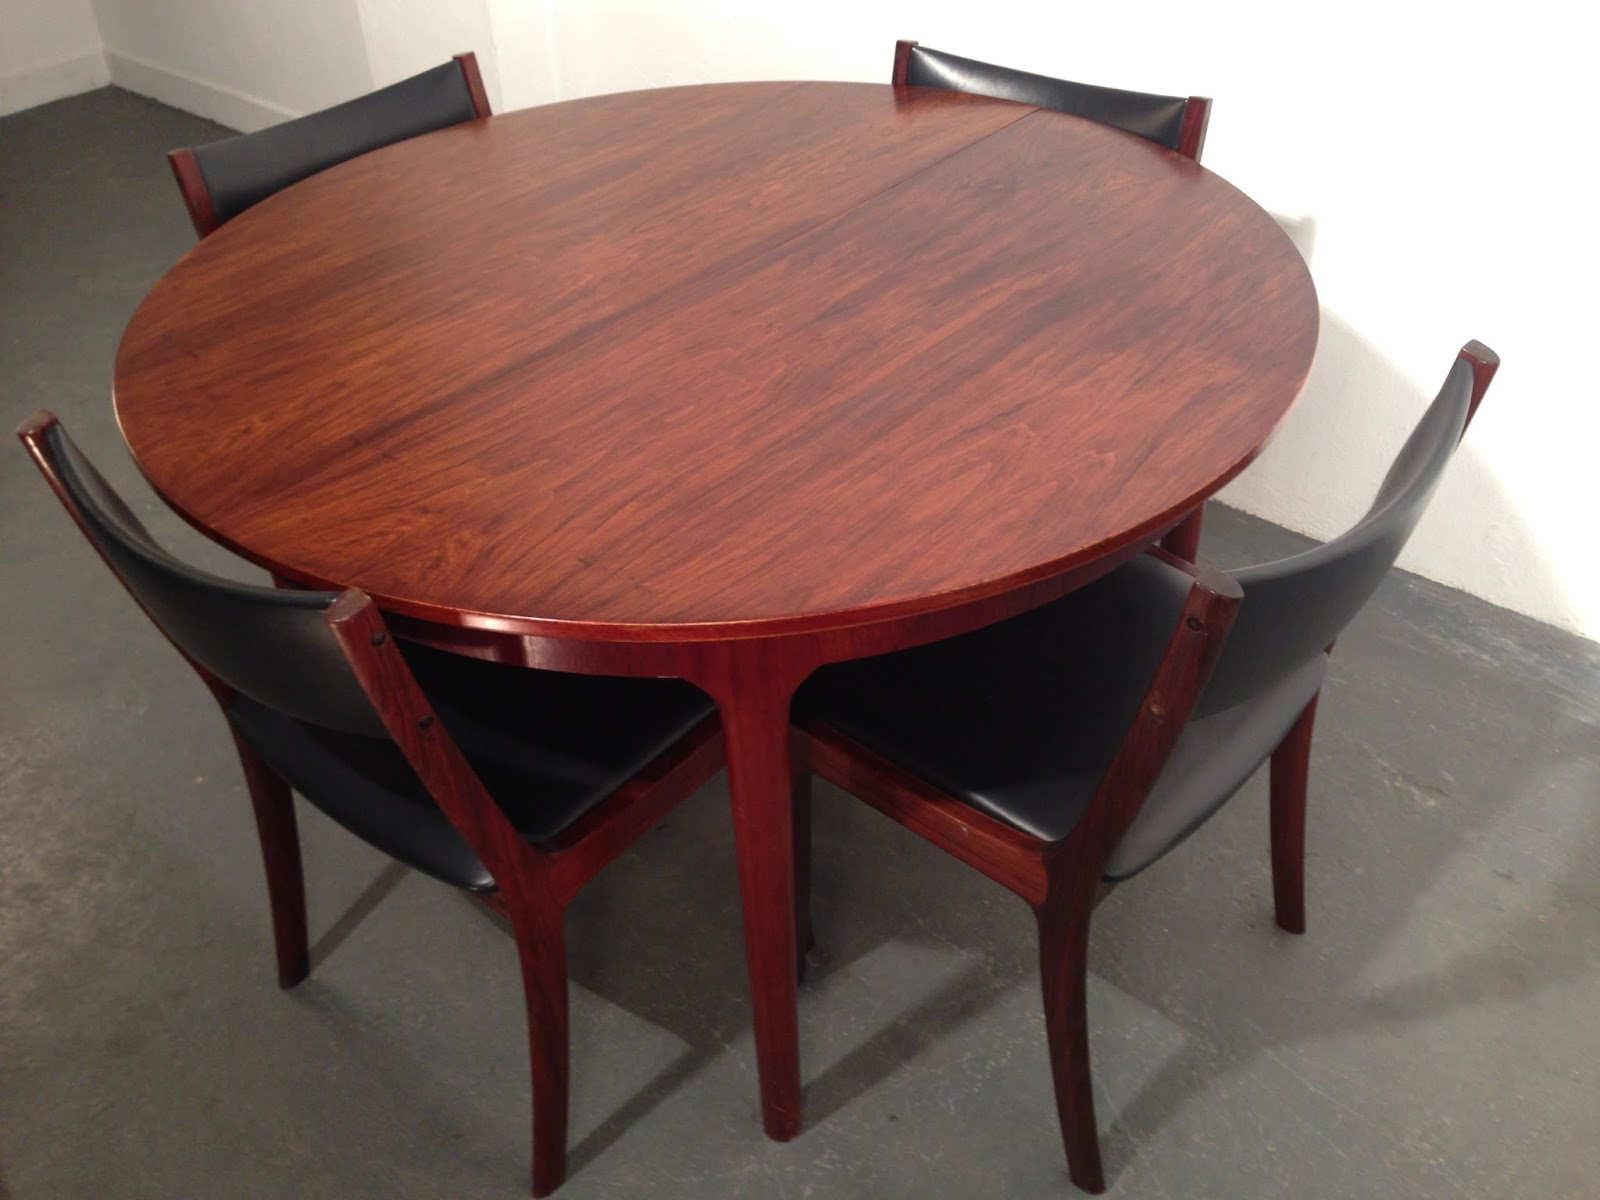 retro dining chairs ireland side with casters ocd vintage furniture 1970s rosewood